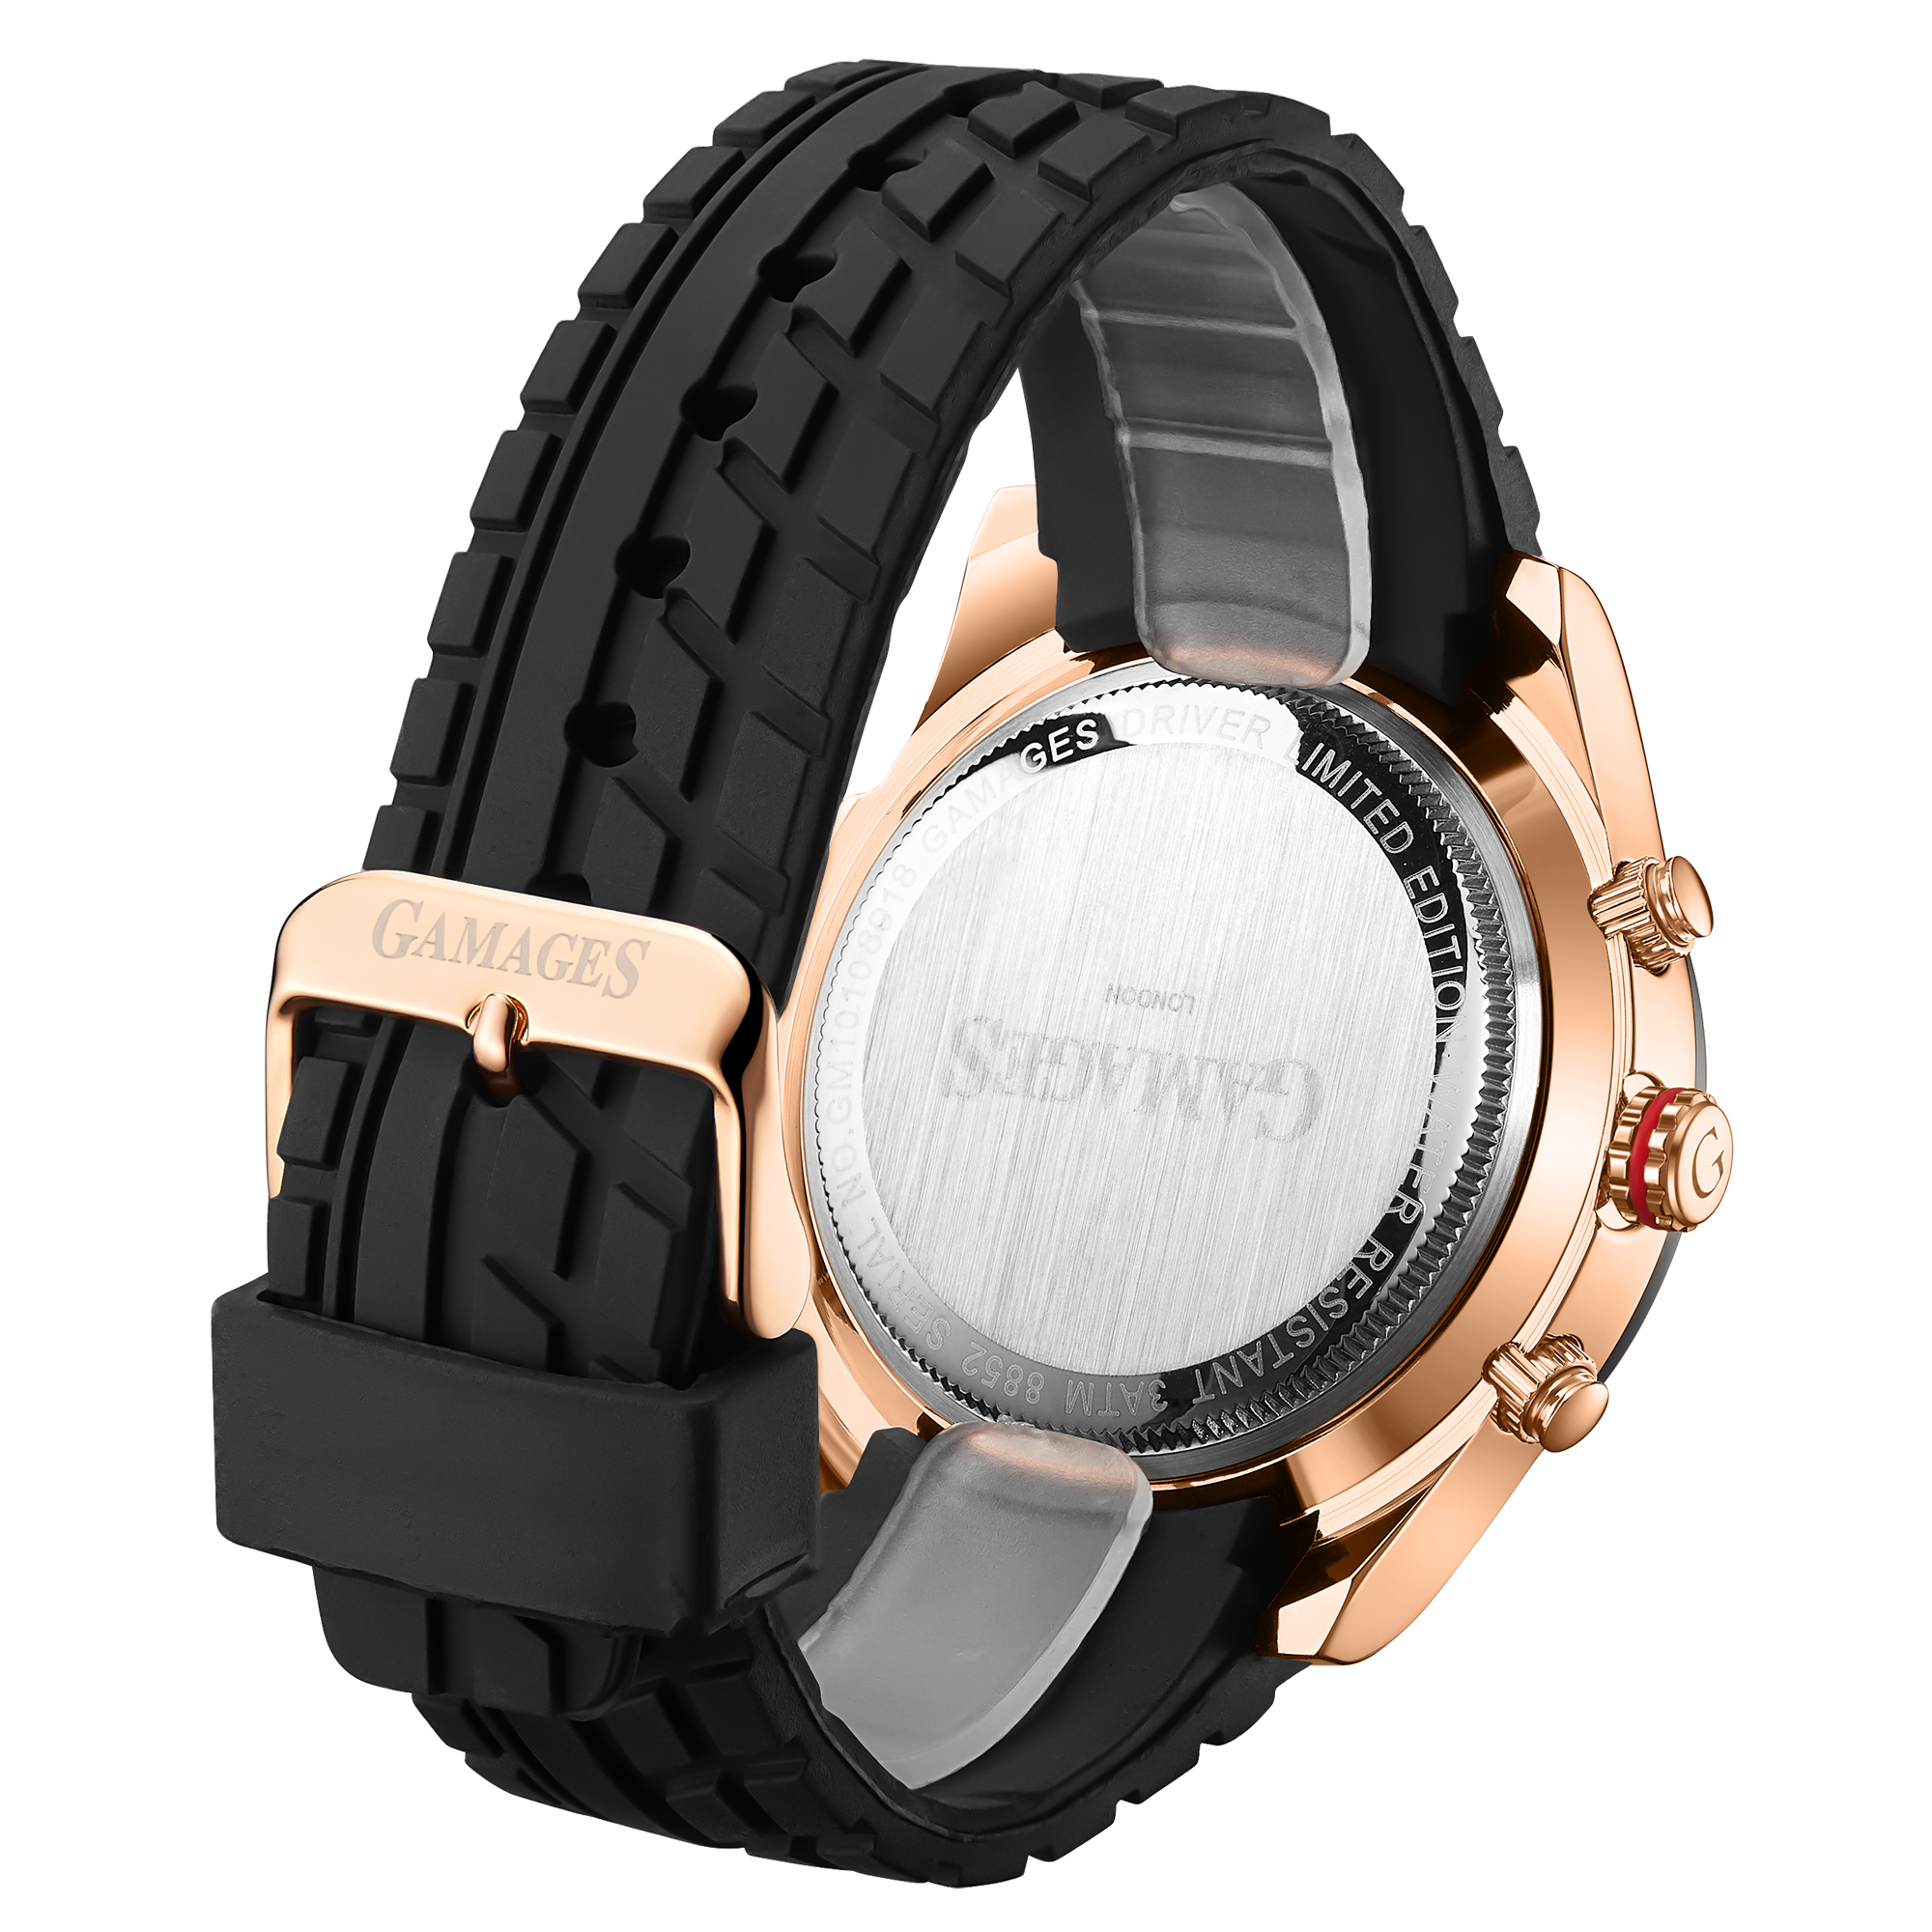 LLtd Edition Hand Assembled Gamages Driver Automatic Rose Gold – 5 Year Warranty & Free Delivery - Image 3 of 5